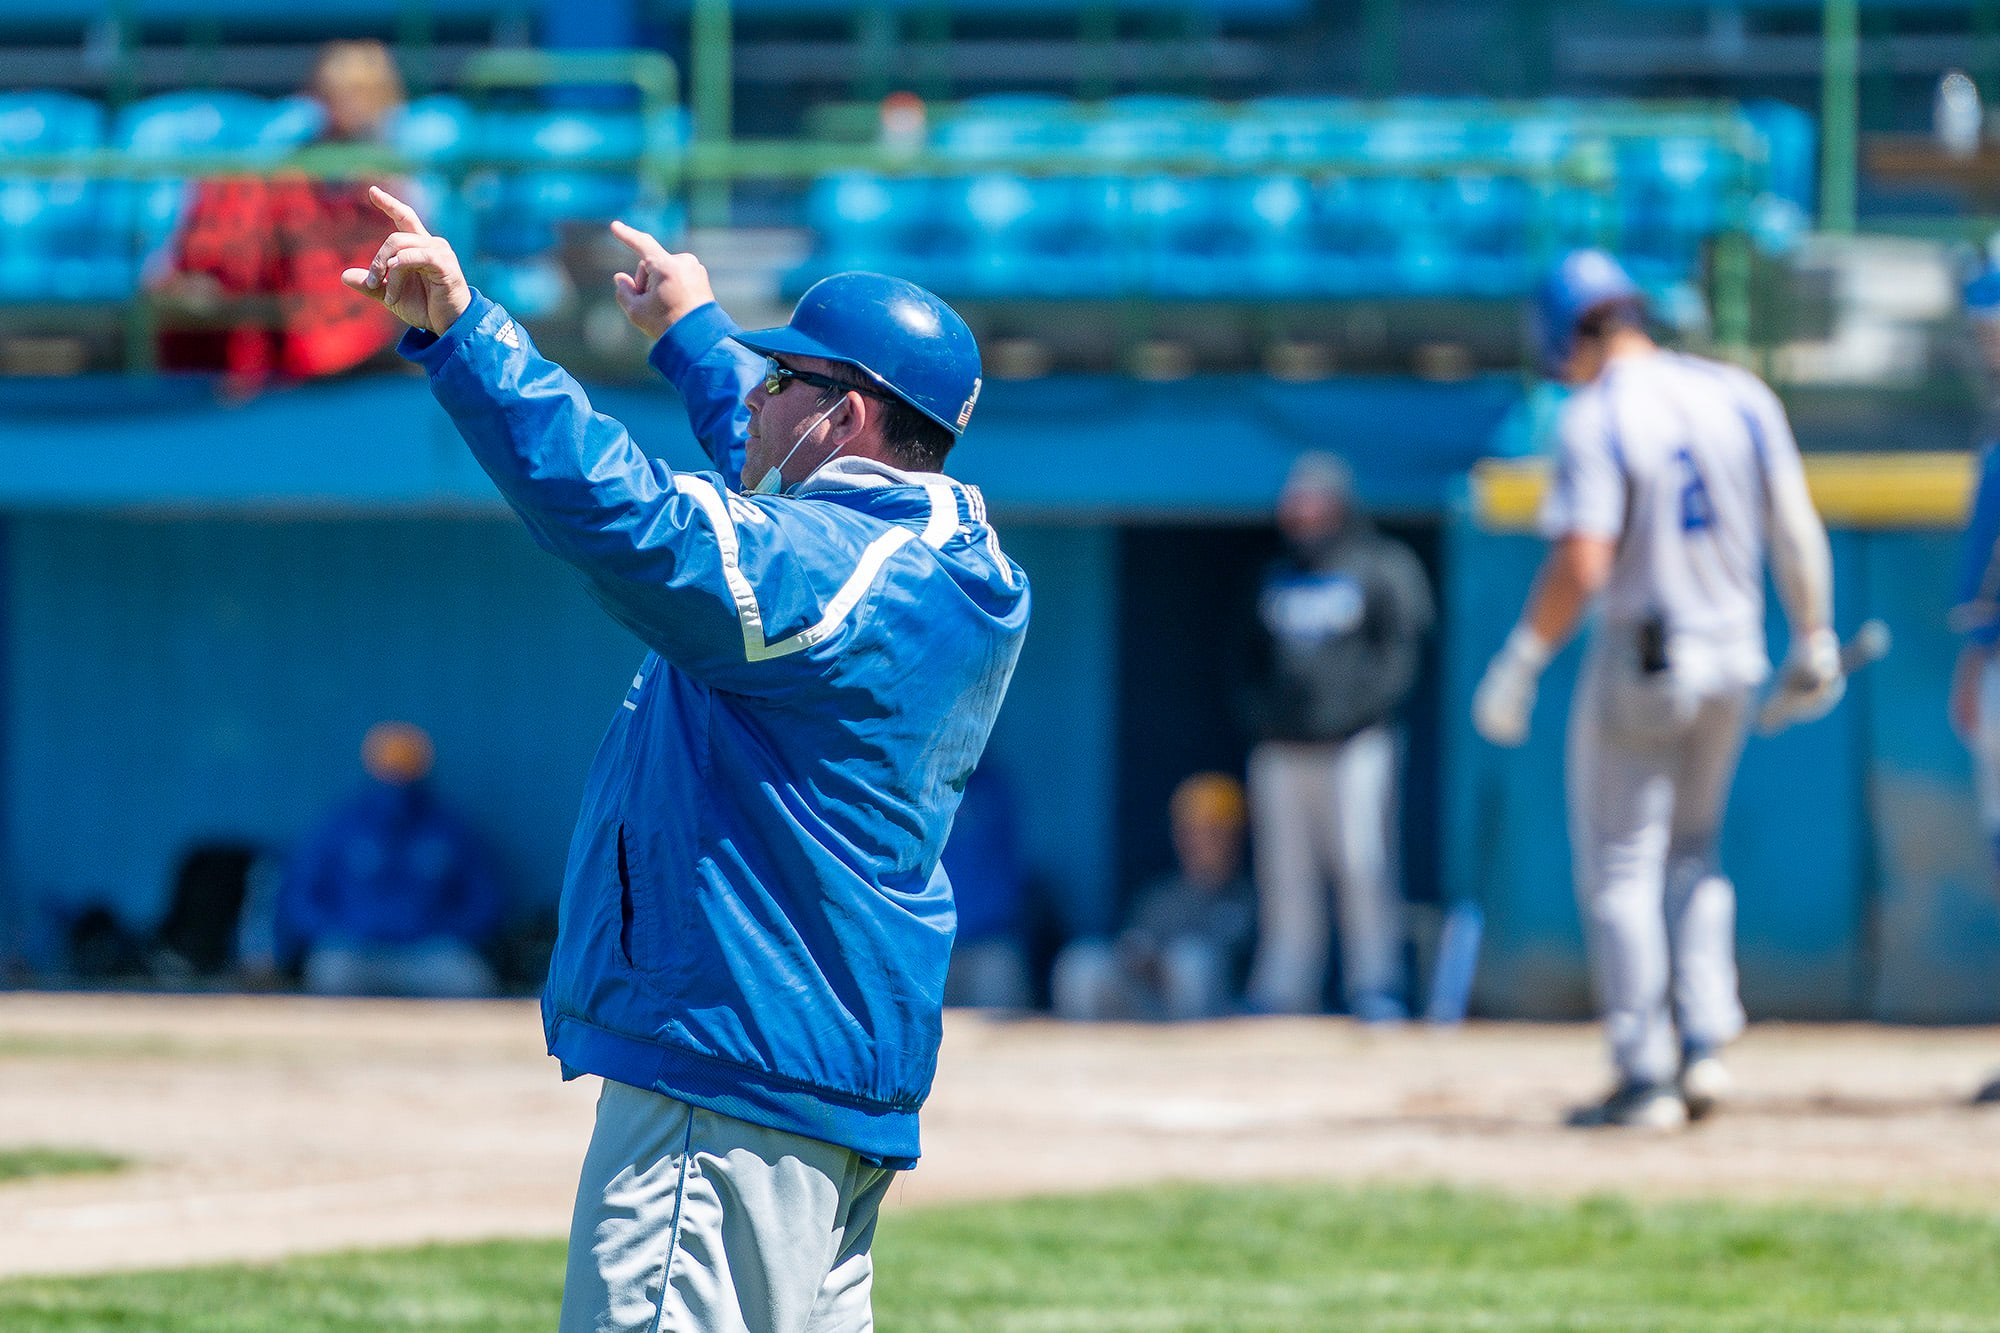 KCC Baseball Coach Eric Laskovy holds his hands up during a game.